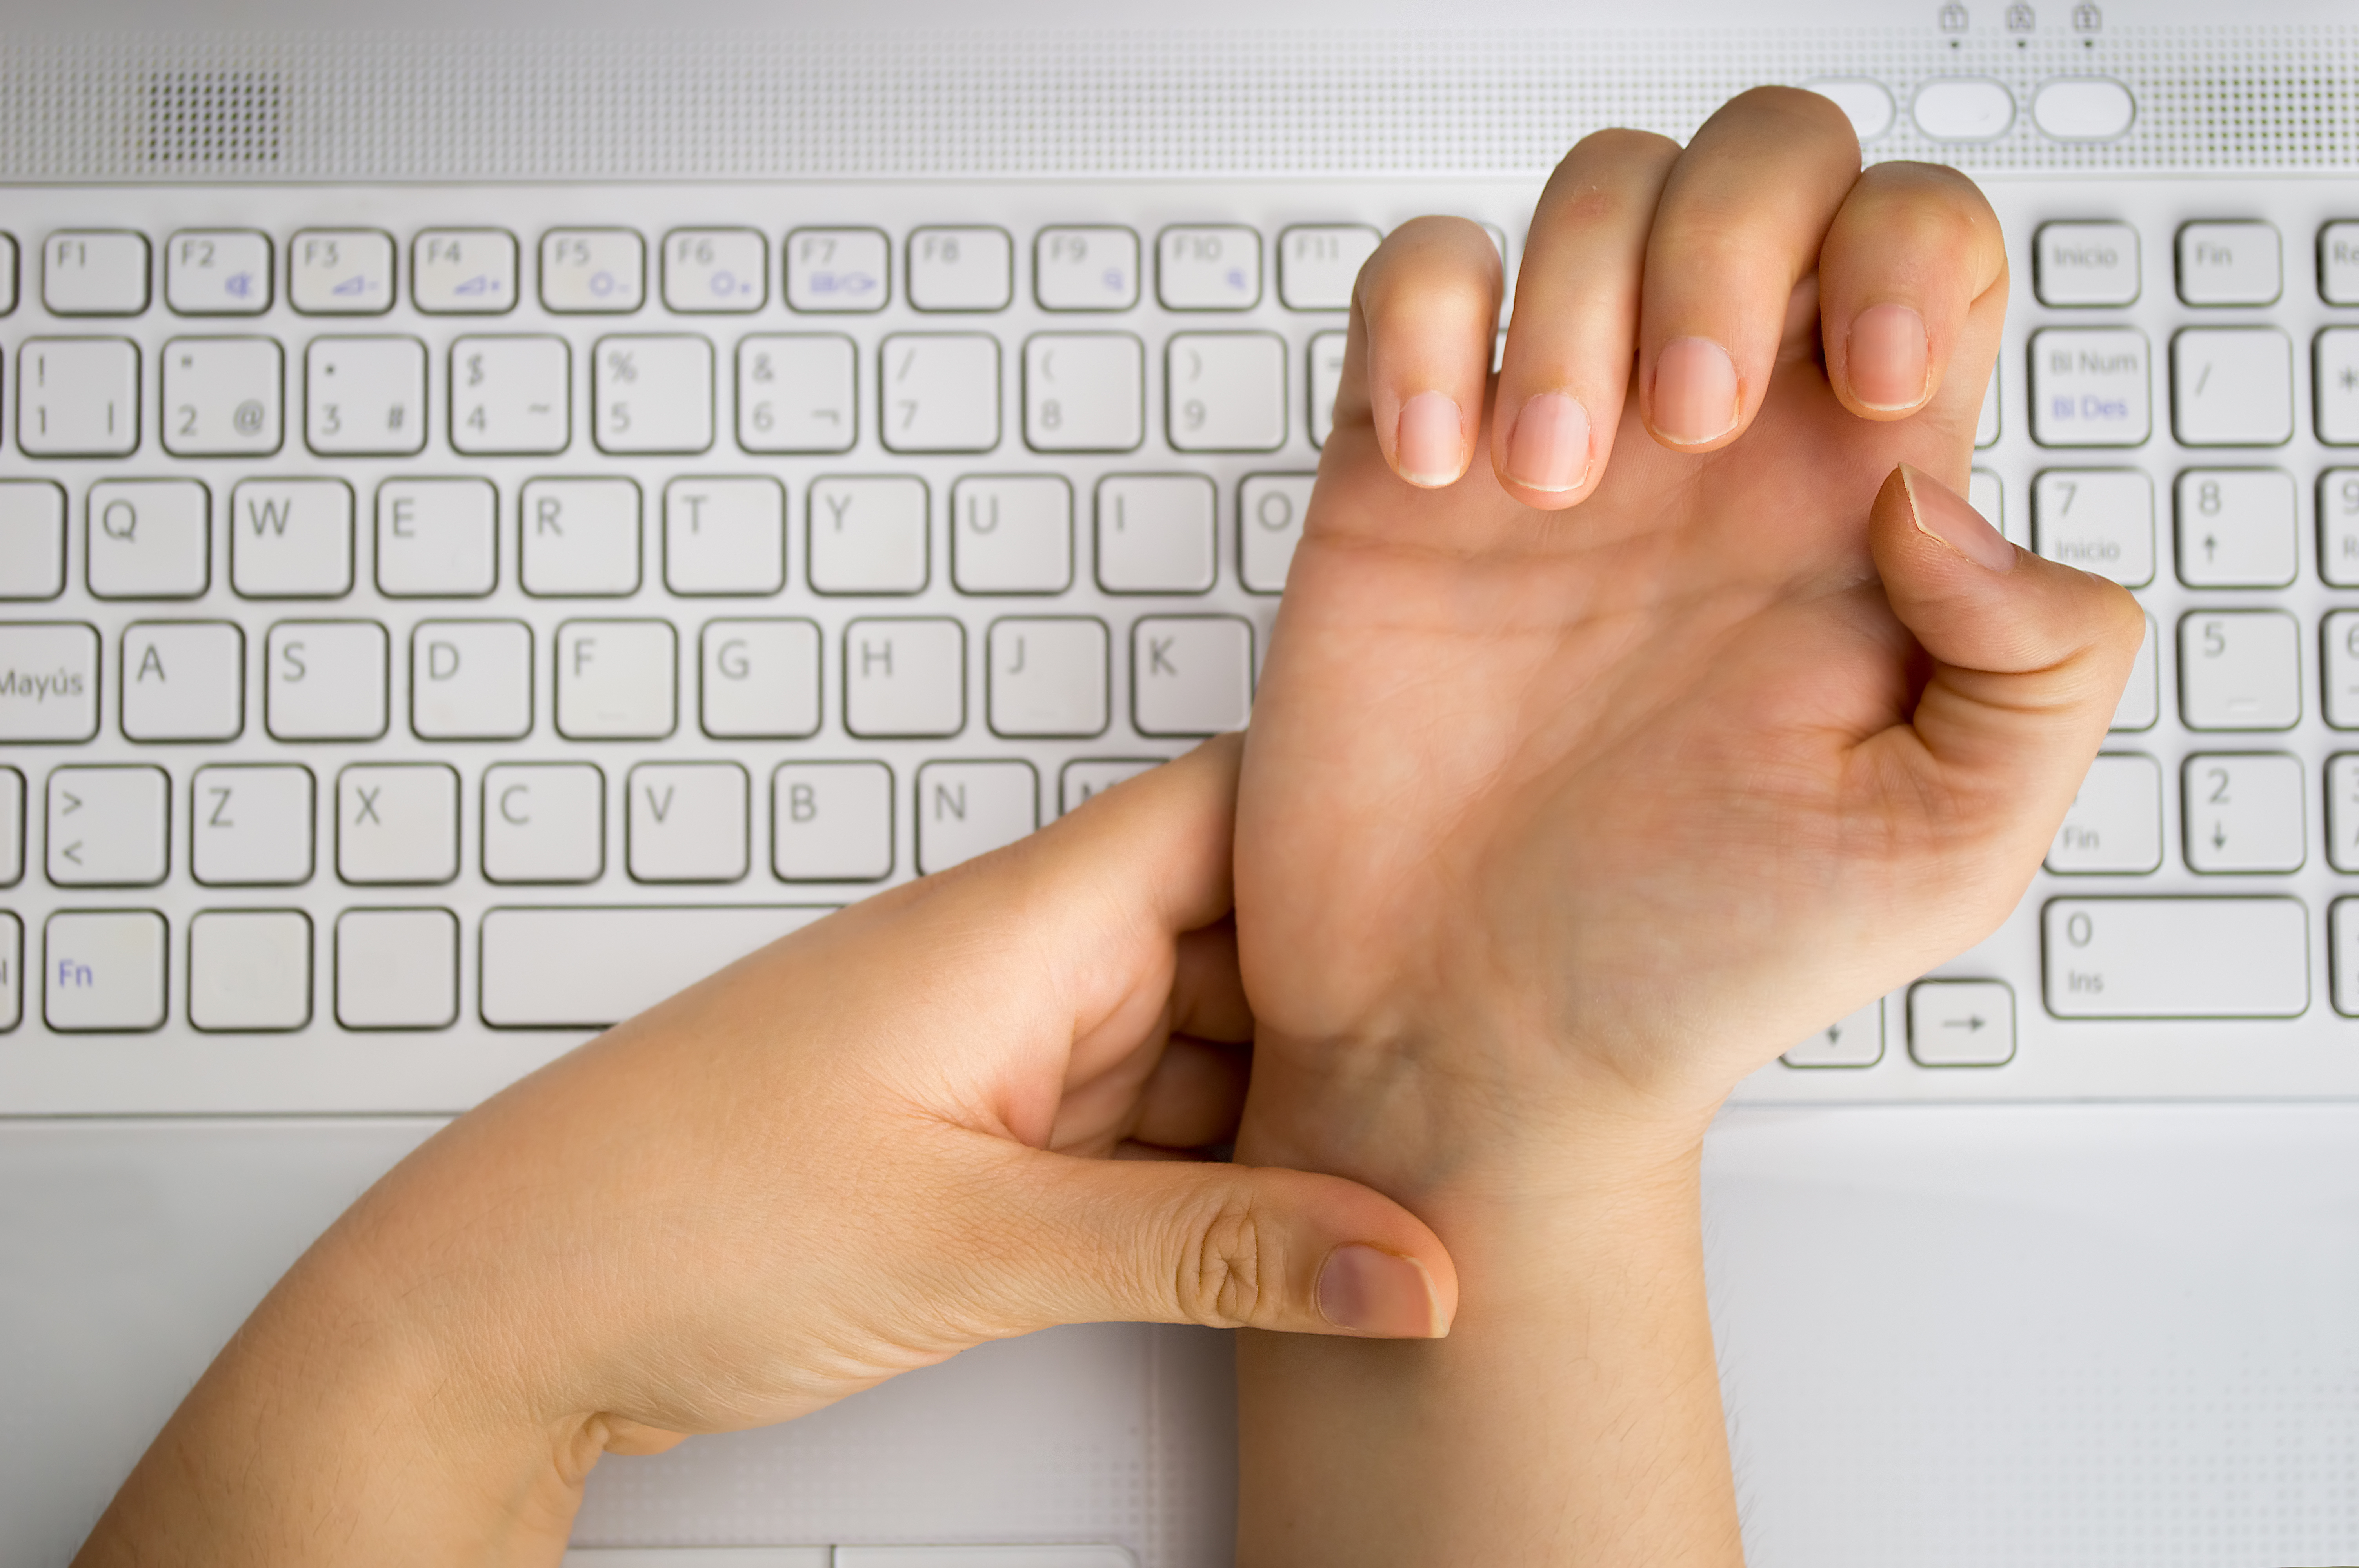 Carpal Tunnel Syndrome at Keyboard